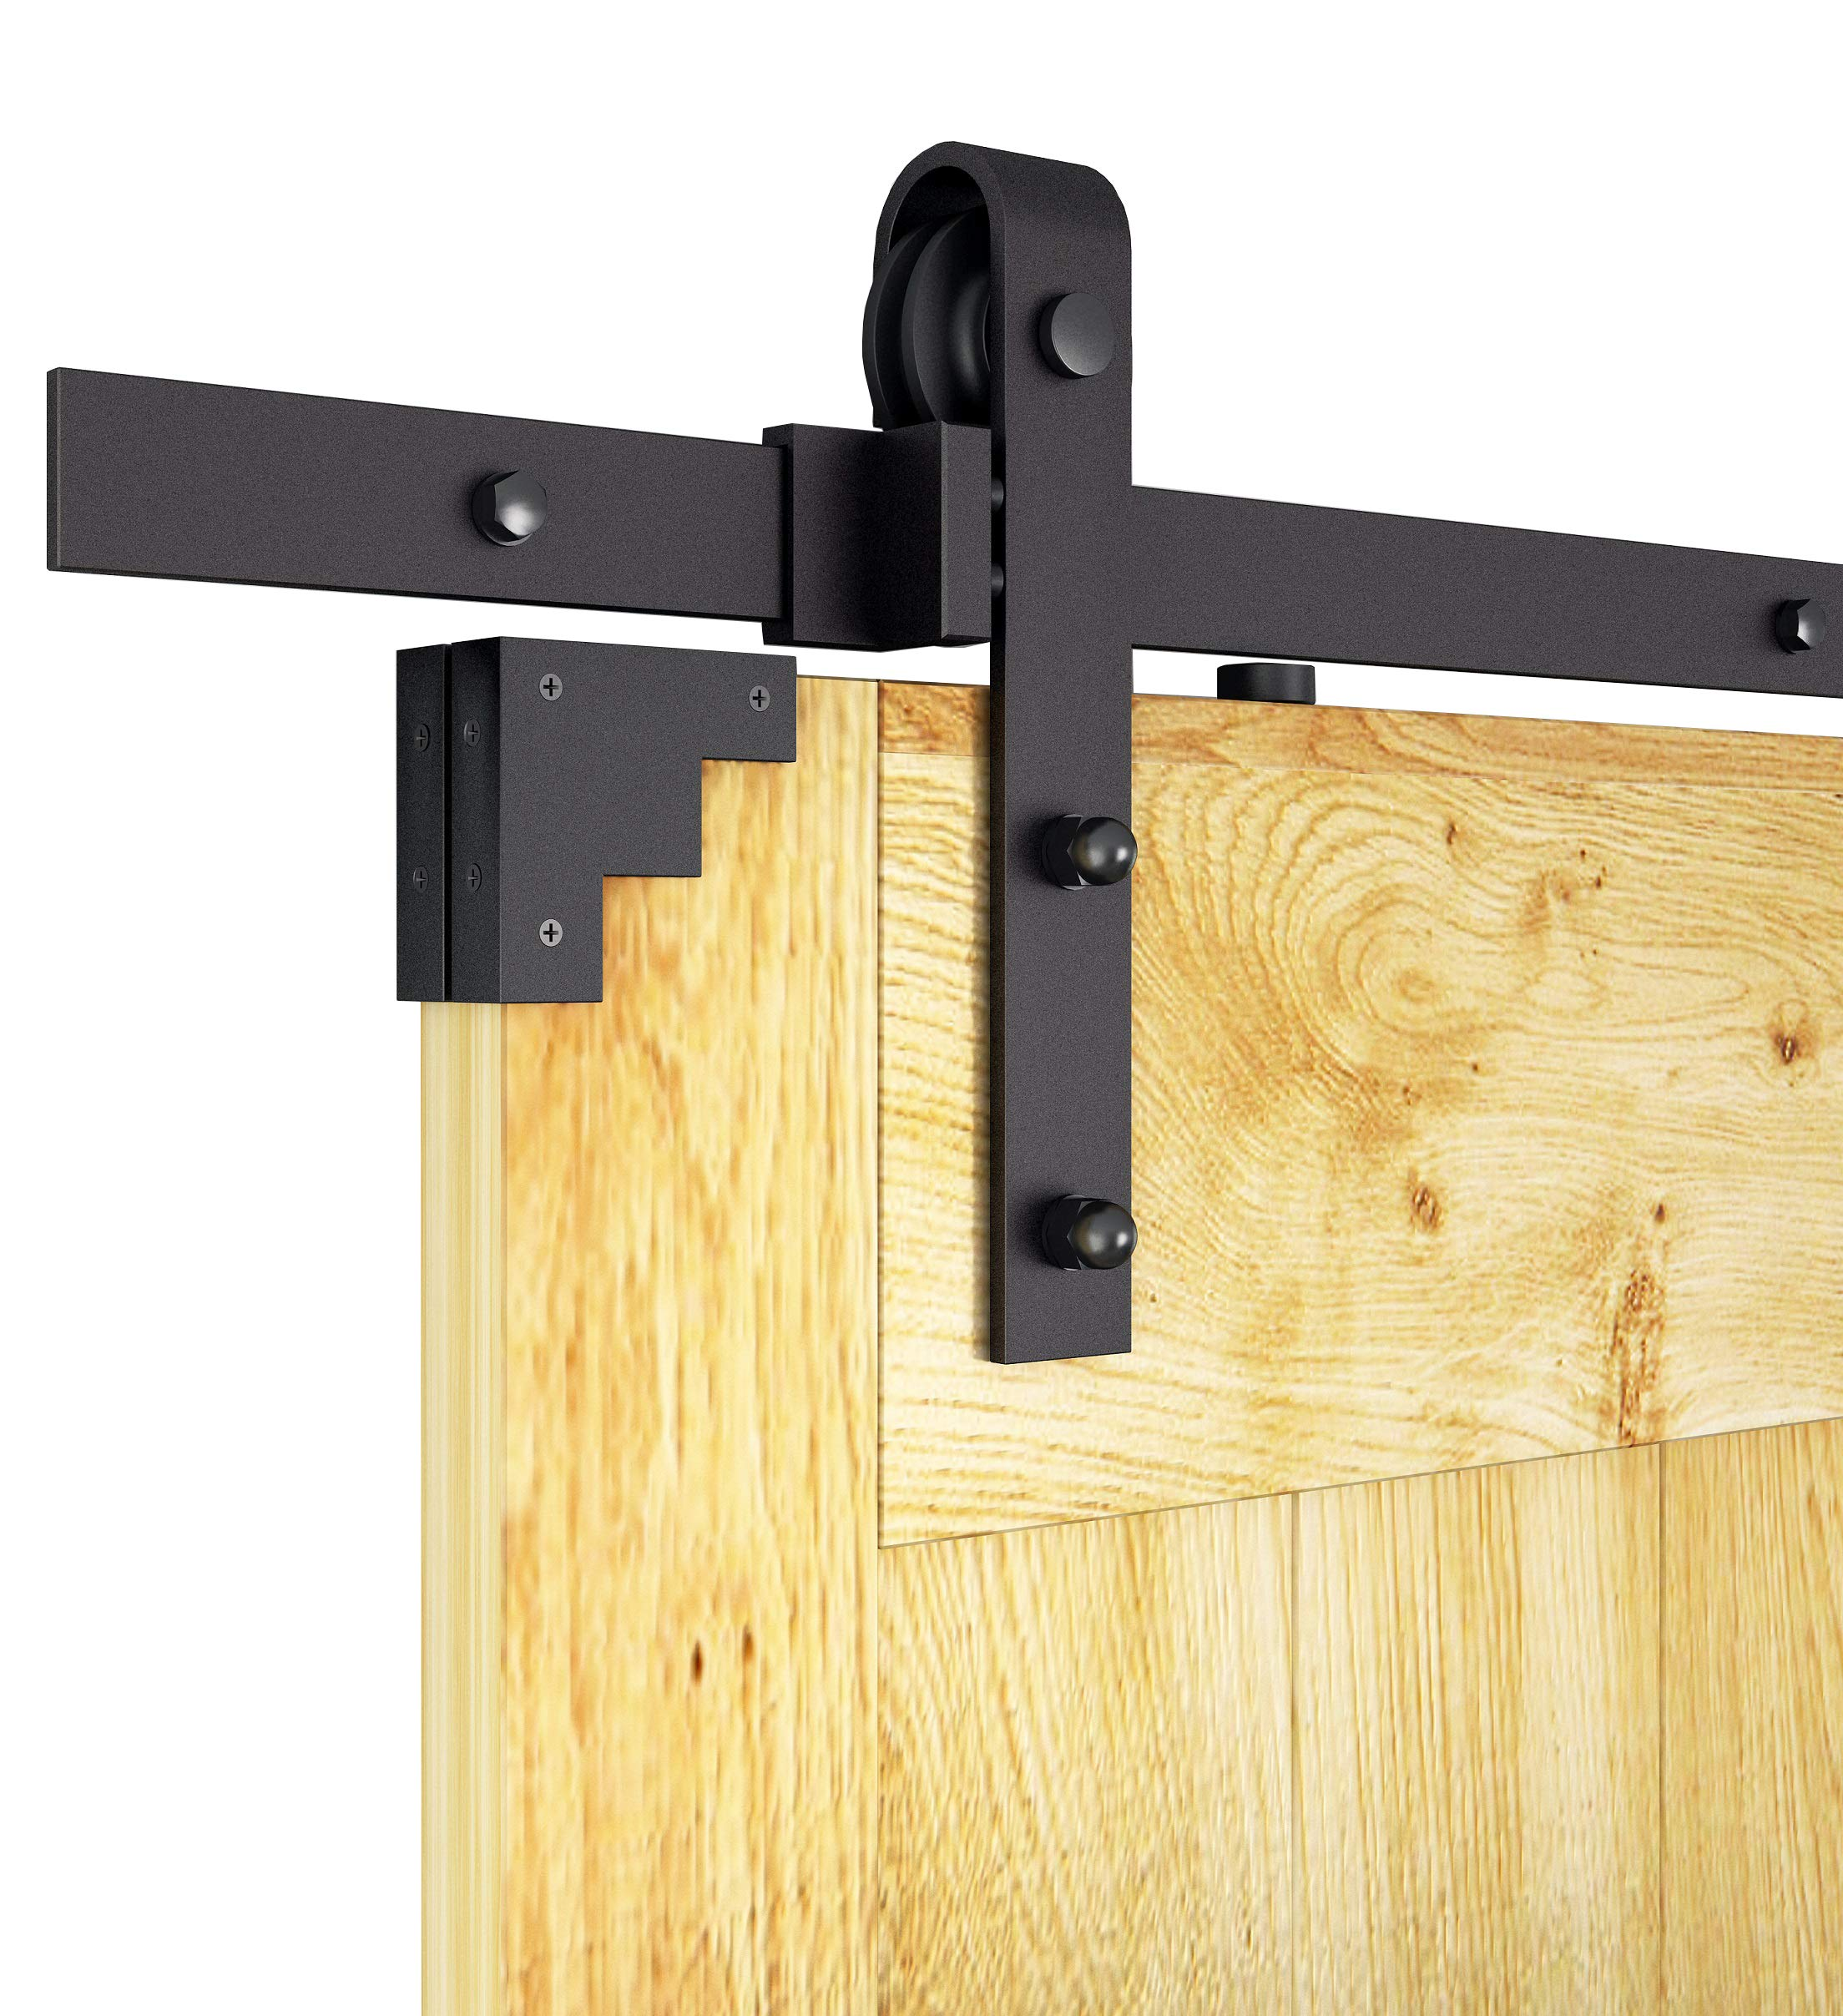 Interior Sliding Door Hardware Diyhd 8ft Rustic Black Bent Straight